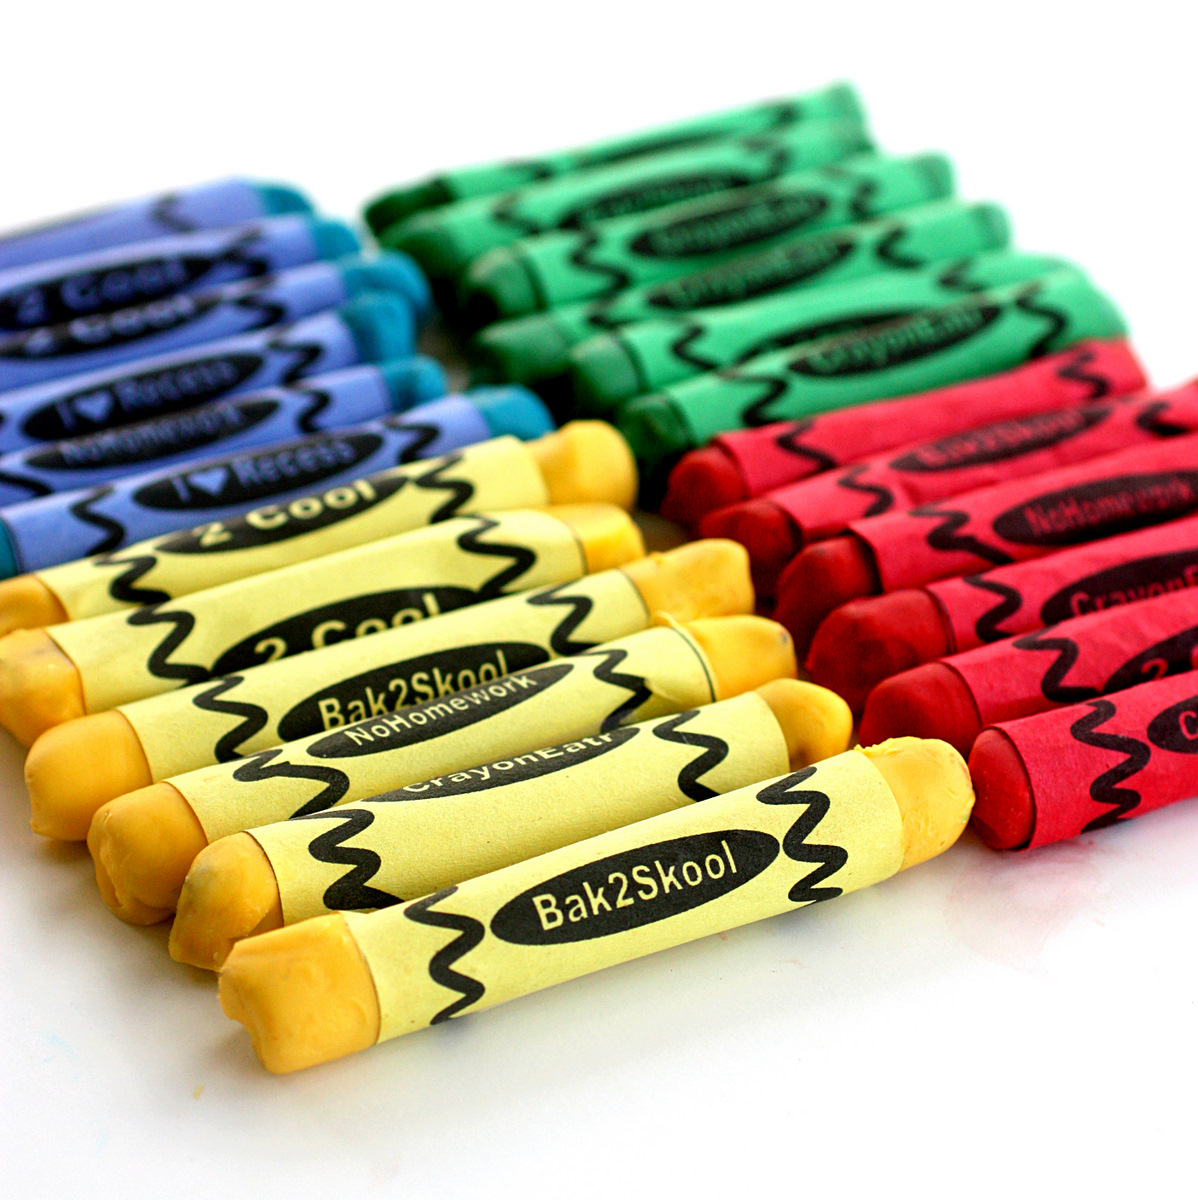 http://www.the-girl-who-ate-everything.com/2011/05/edible-crayons-for-teacher-appreciation.html